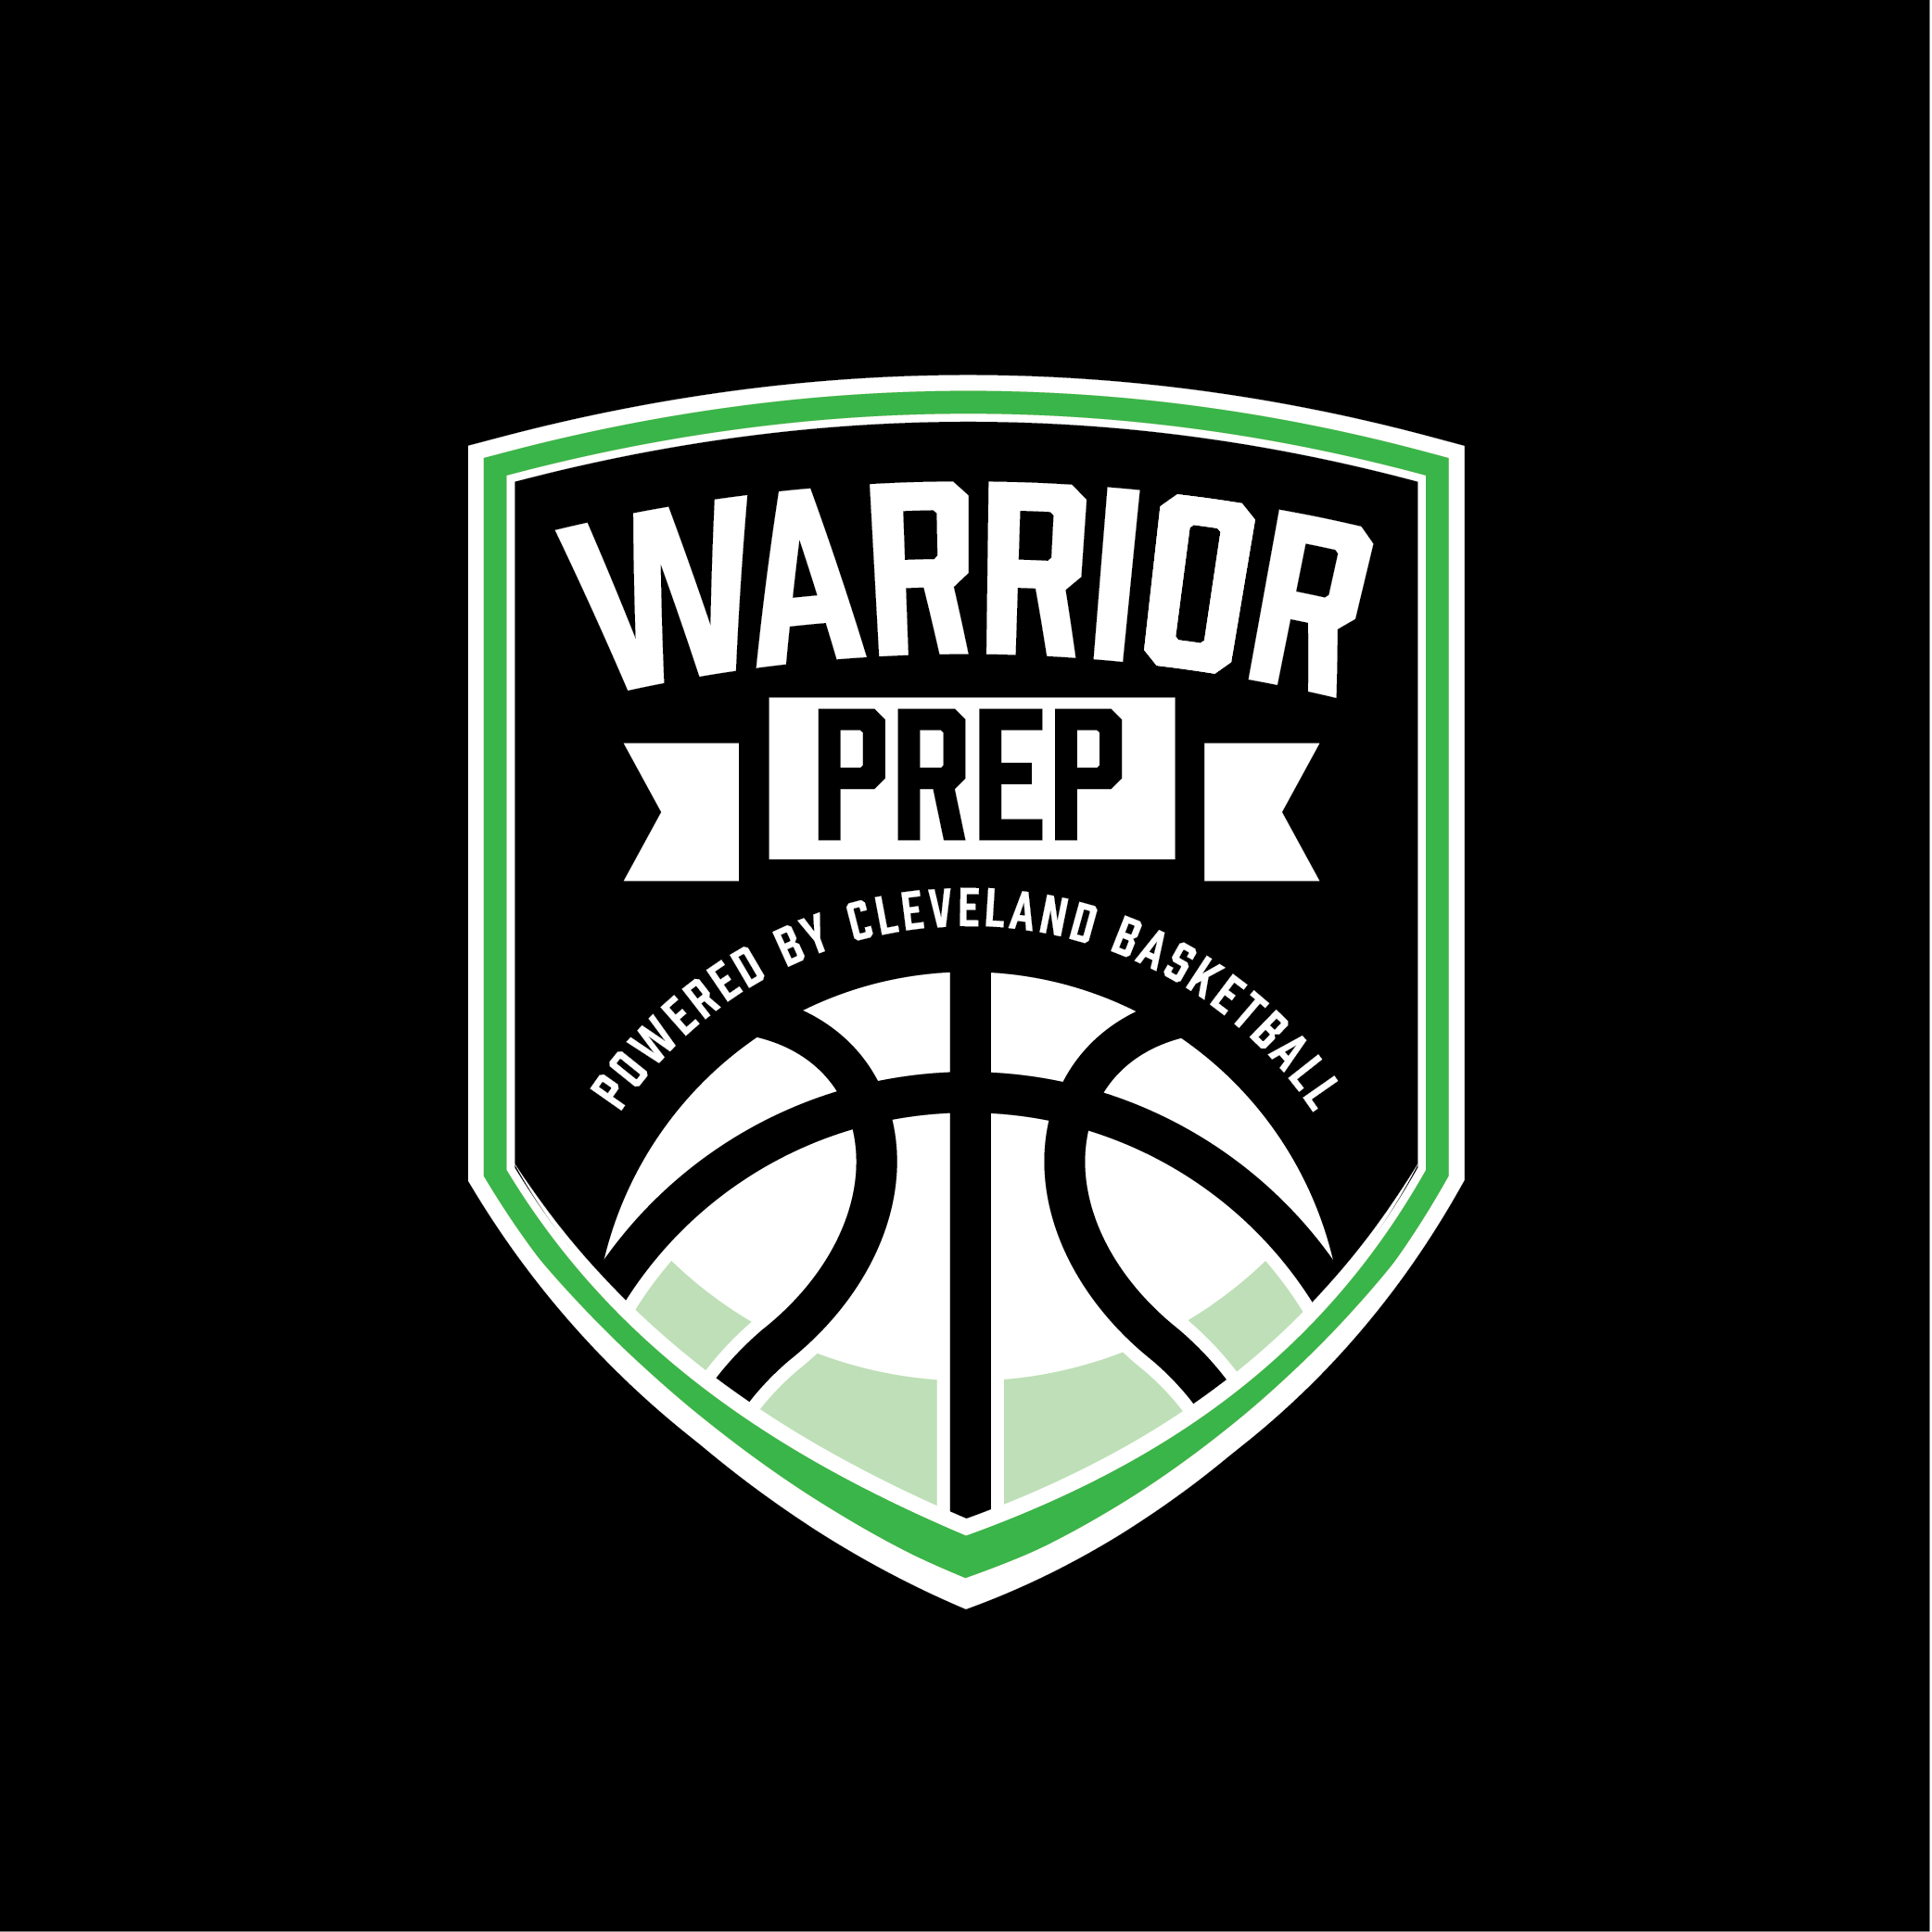 Warrior Prep Coaching Responsibilities   Coaches are responsible for WEEKLY team communication about the schedule etc. (may be delegated to an Assistant Coach or a Team Parent)  Coaches must be able to run weekly practices.  Coaches are responsible for game management and in-game coaching of all games throughout the season.   Coaching Perks- Because your service is appreciated!   Head Coaches of 5th-8th will be compensated. Accommodations & Travel are also covered for out-of-town trips.  ALL Head Coaches will receive a voucher for a free ticket to a Trail Blazer game during the current season (Date TBD)